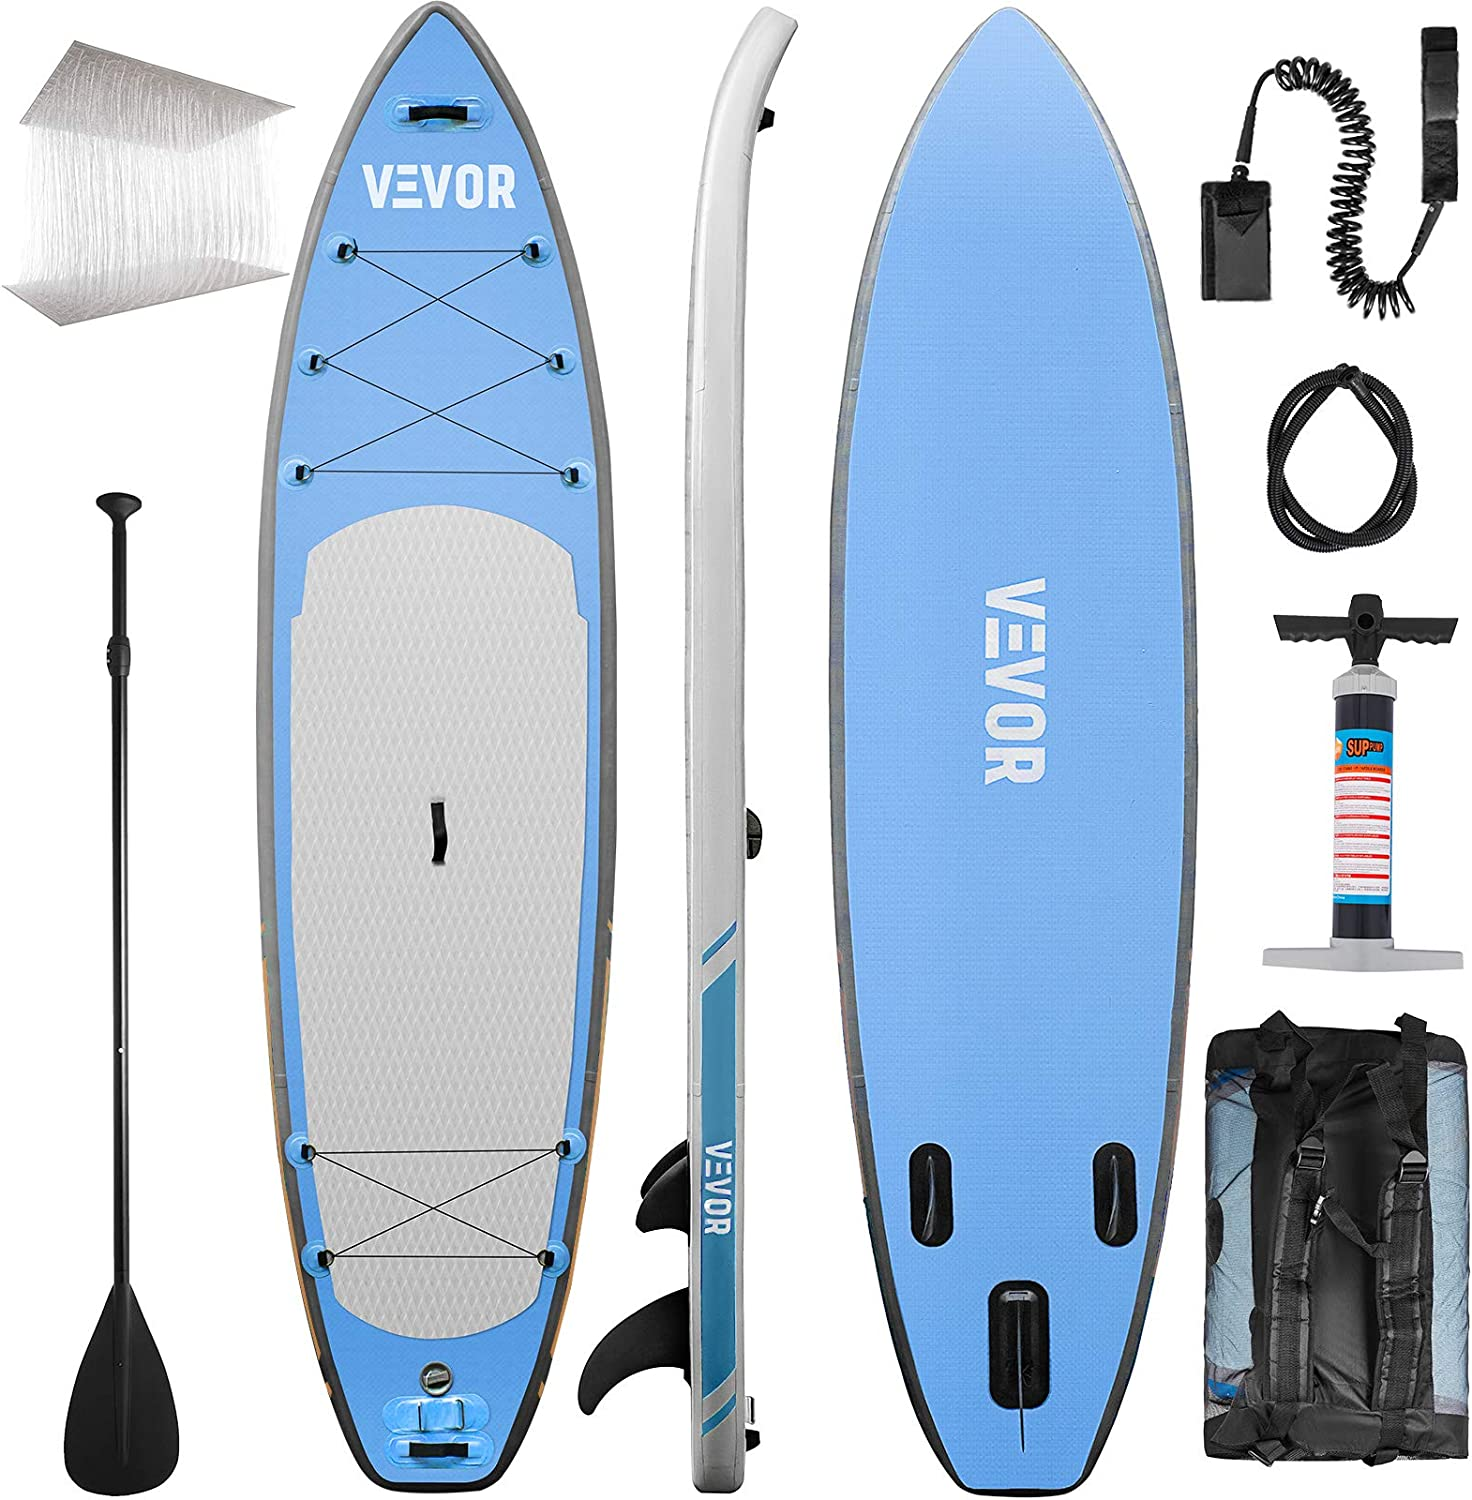 Amazon.com : Happybuy Inflatable Stand Up Paddle Board SUP ...